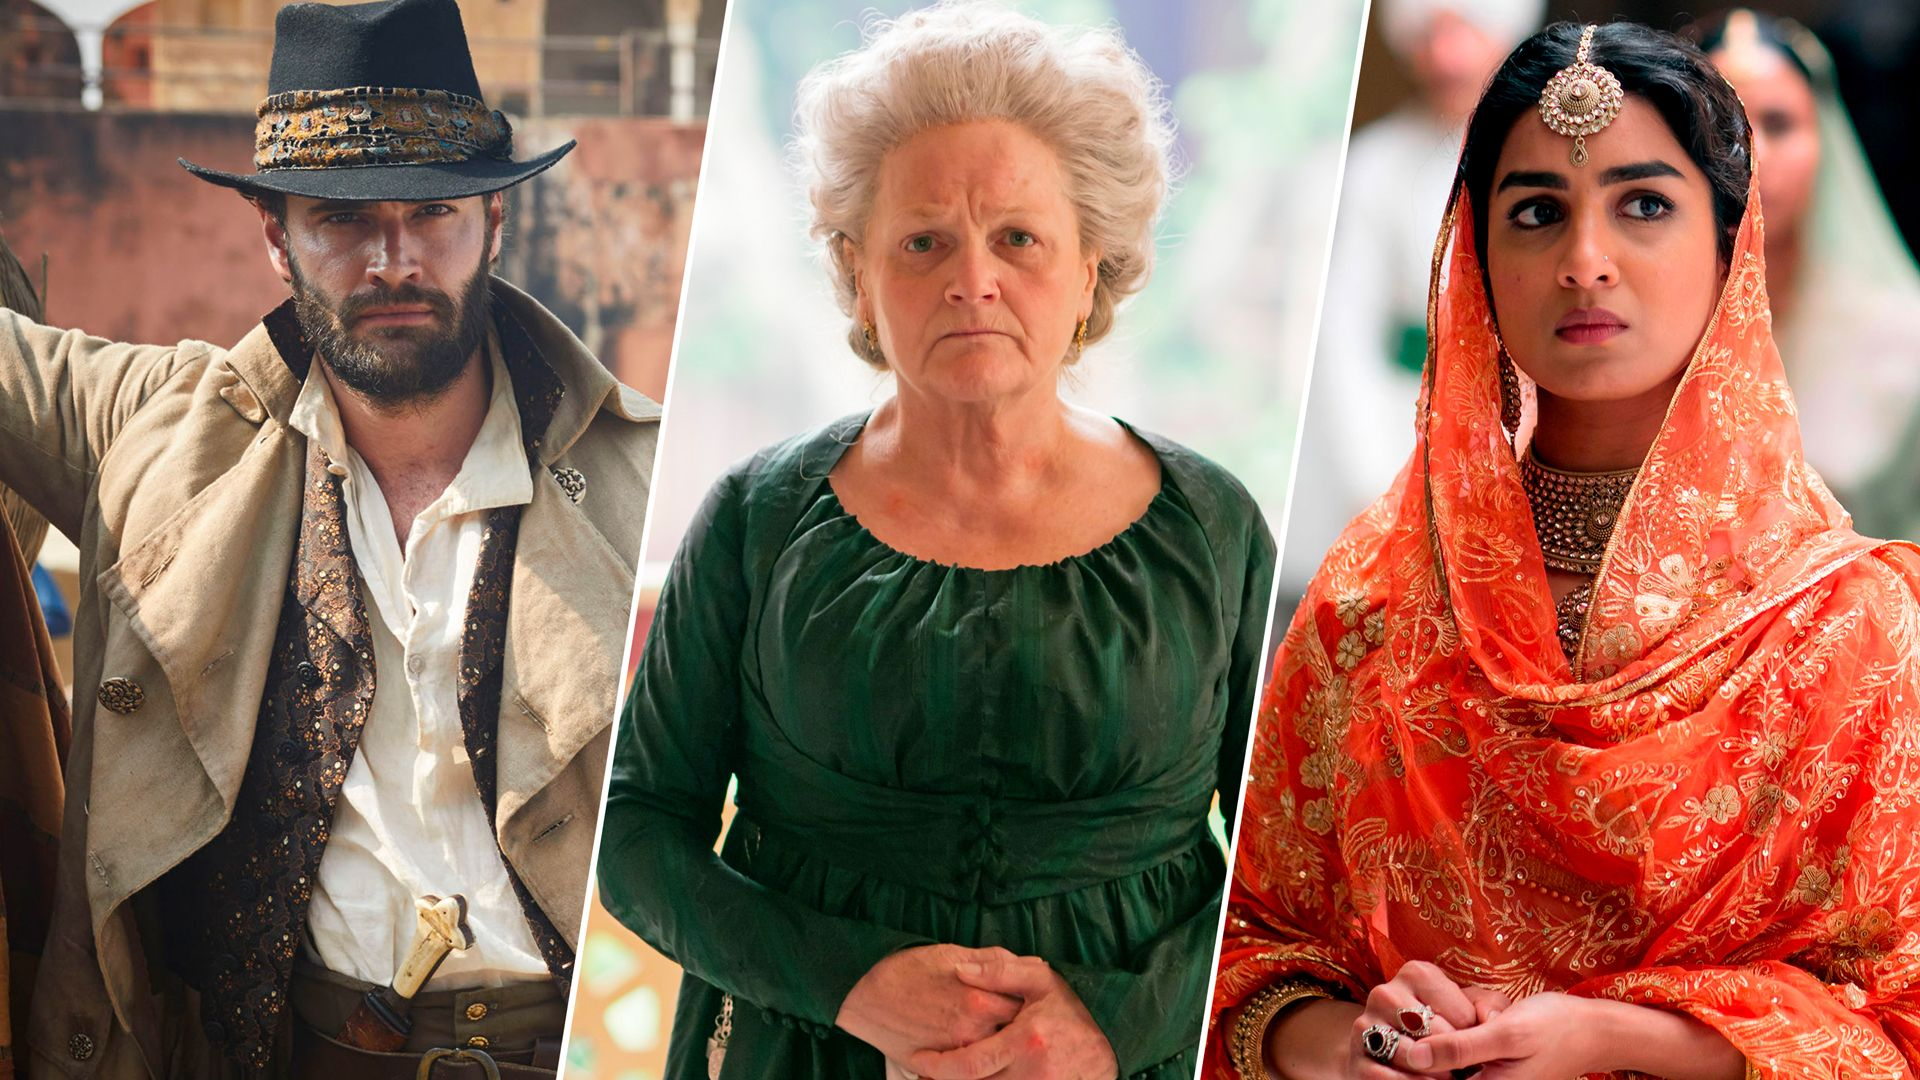 Tom Bateman, Lesley Nicol and Pallavi Sharda of the Beecham House cast